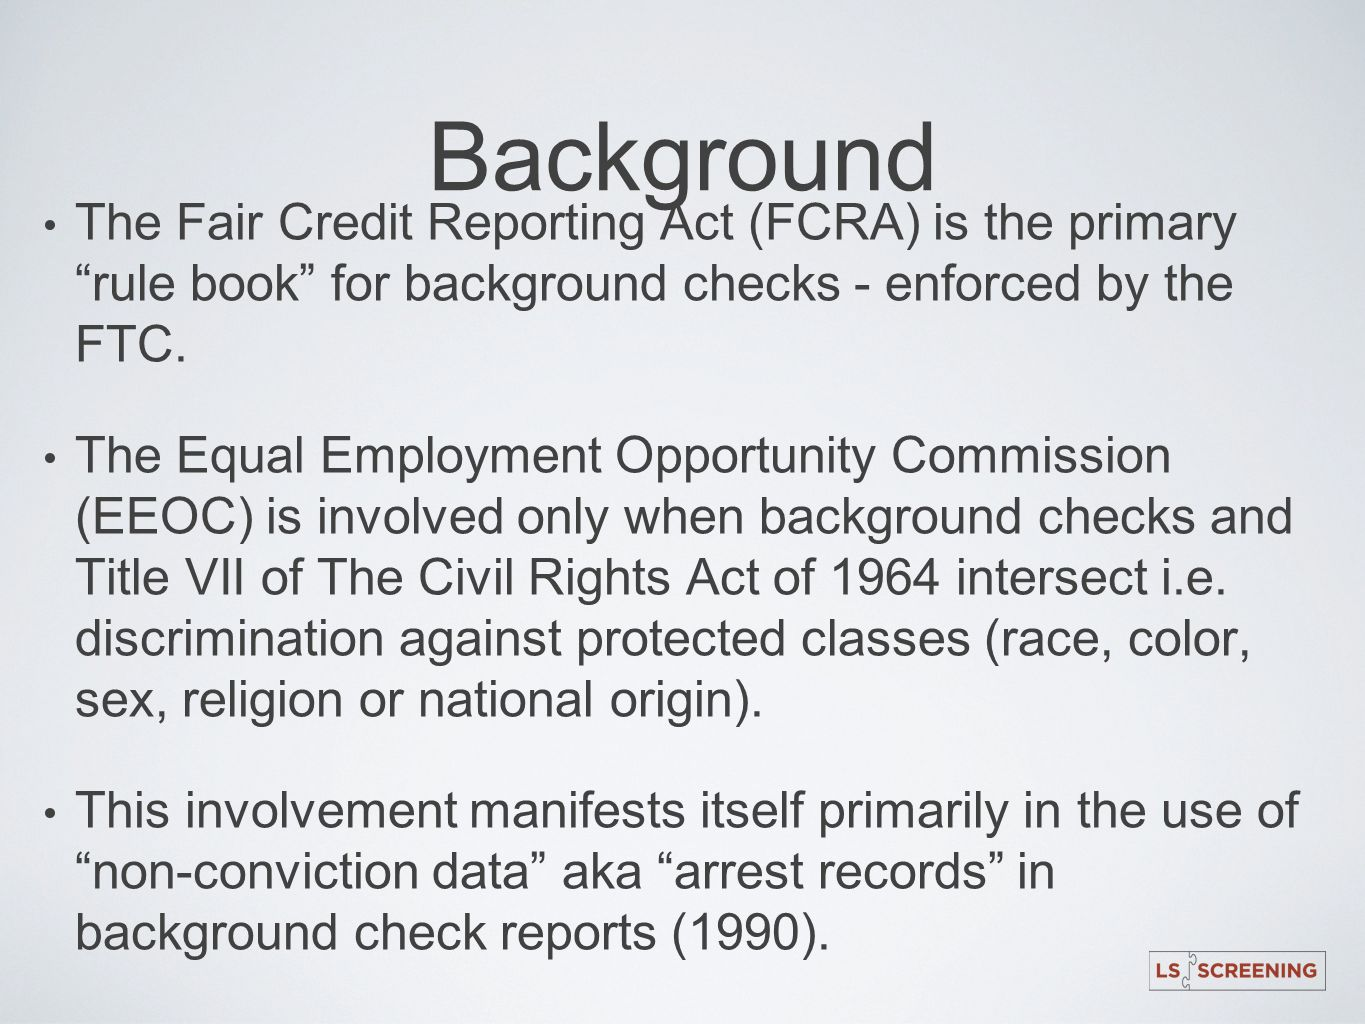 Background The Fair Credit Reporting Act (FCRA) is the primary rule book for background checks - enforced by the FTC.